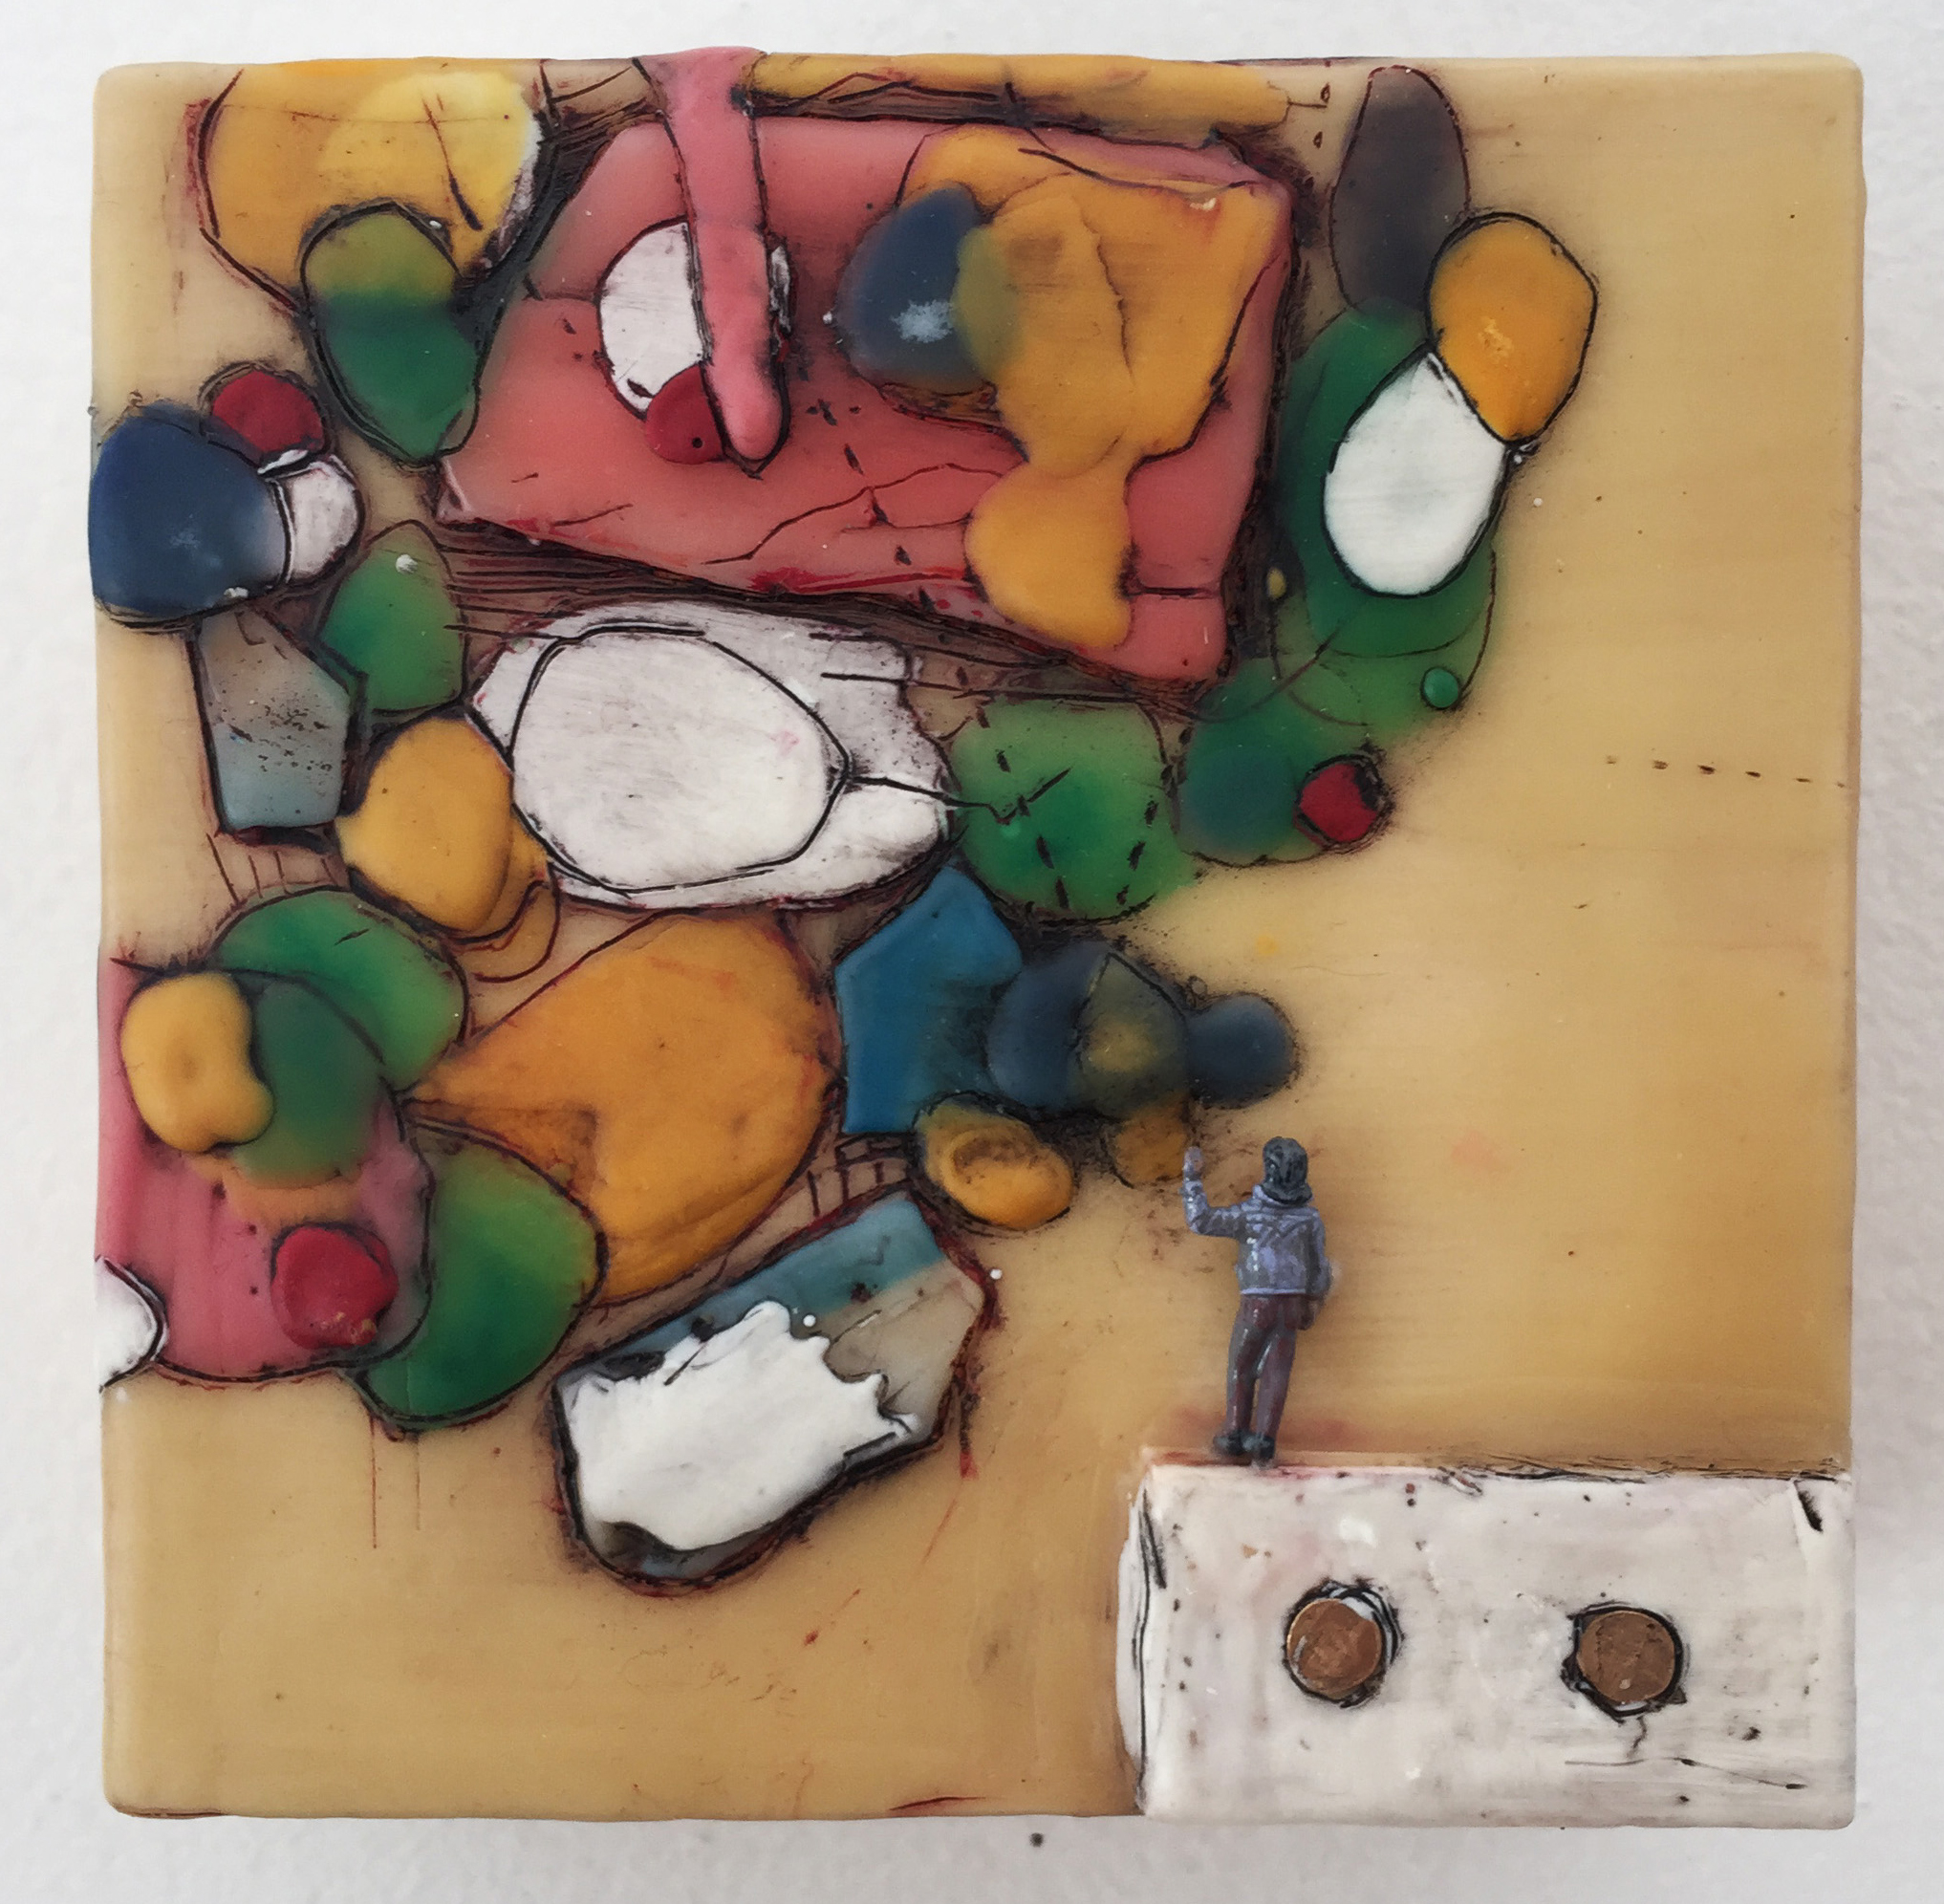 Hélène Farrar, What We Carry: Middle Age, encaustic and painted small person model, 4 x 4 inches